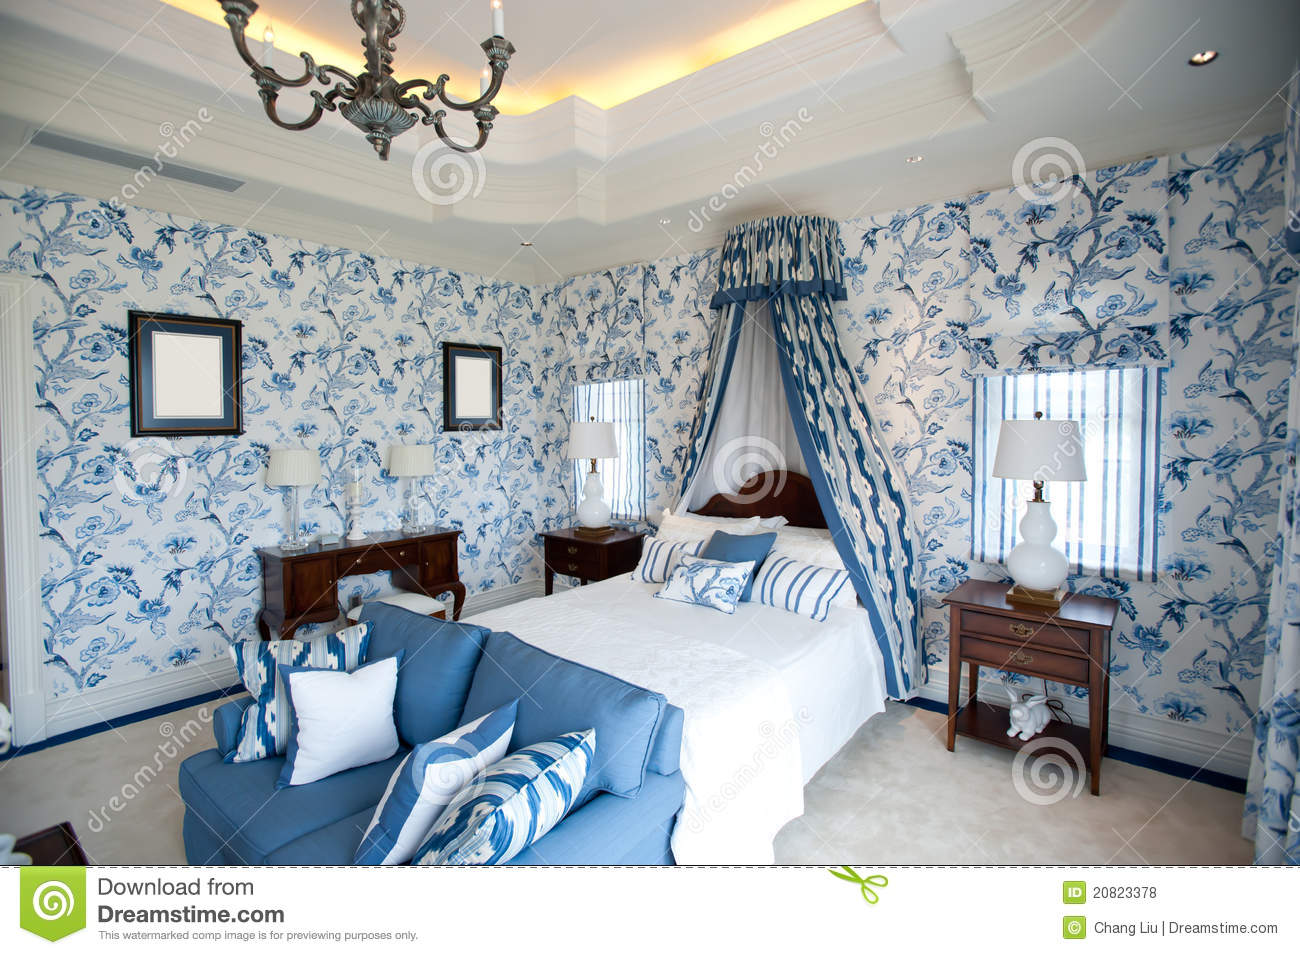 Bedroom with blue flower wallpaper royalty free stock for Blue wallpaper designs for bedroom